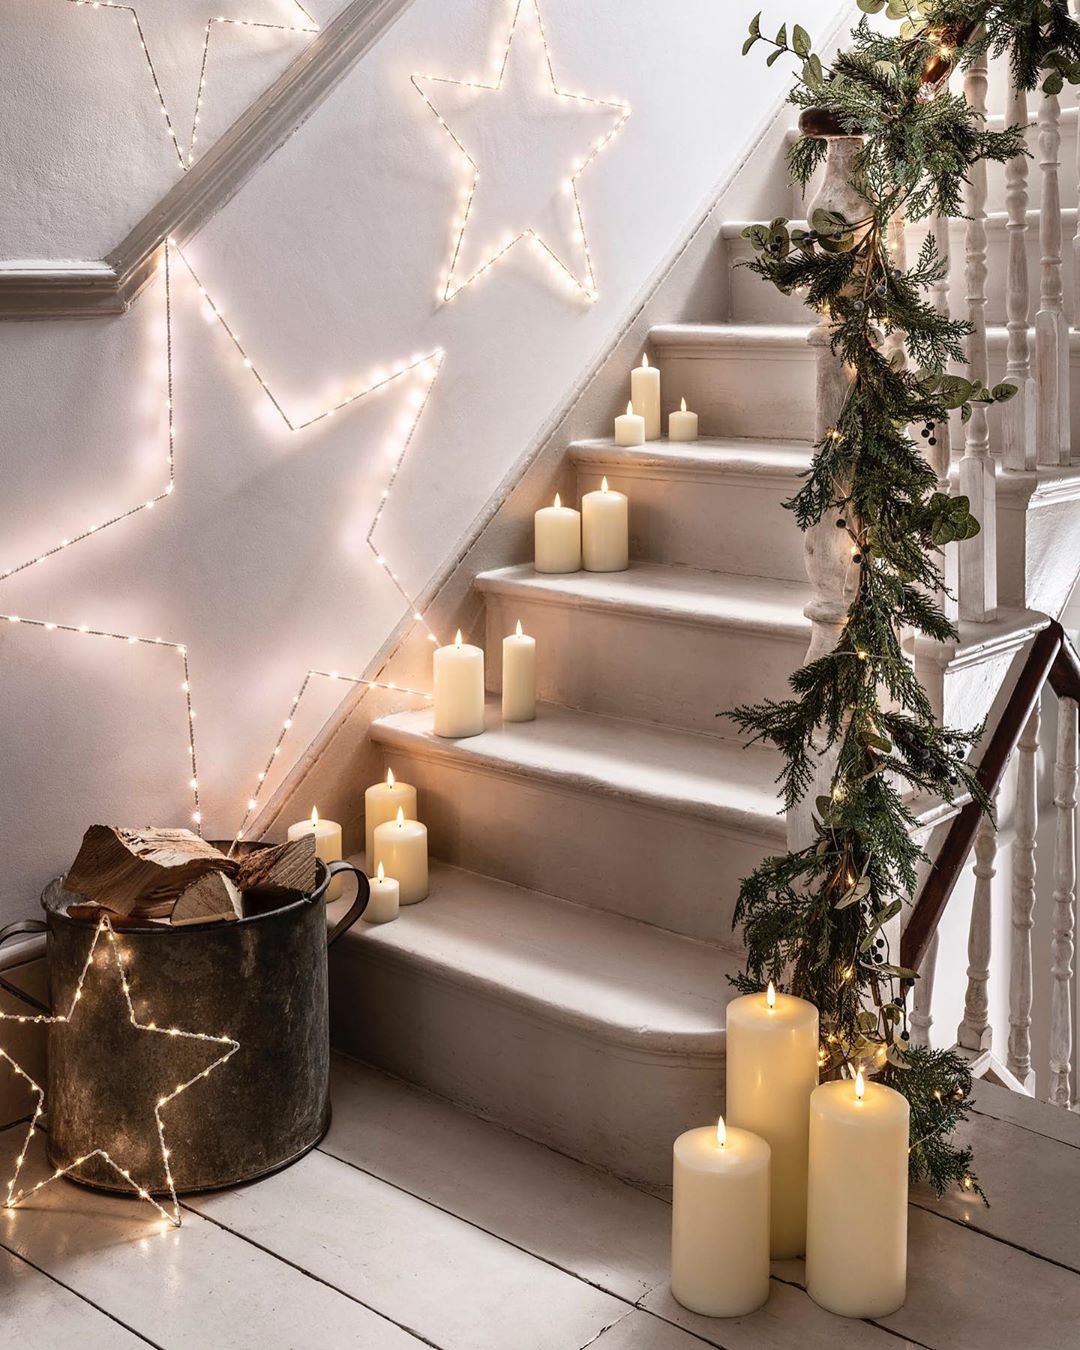 Md Cd Christmas Lights 2020 Holiday Decoration Ideas For 2019/2020 — Grayson Living